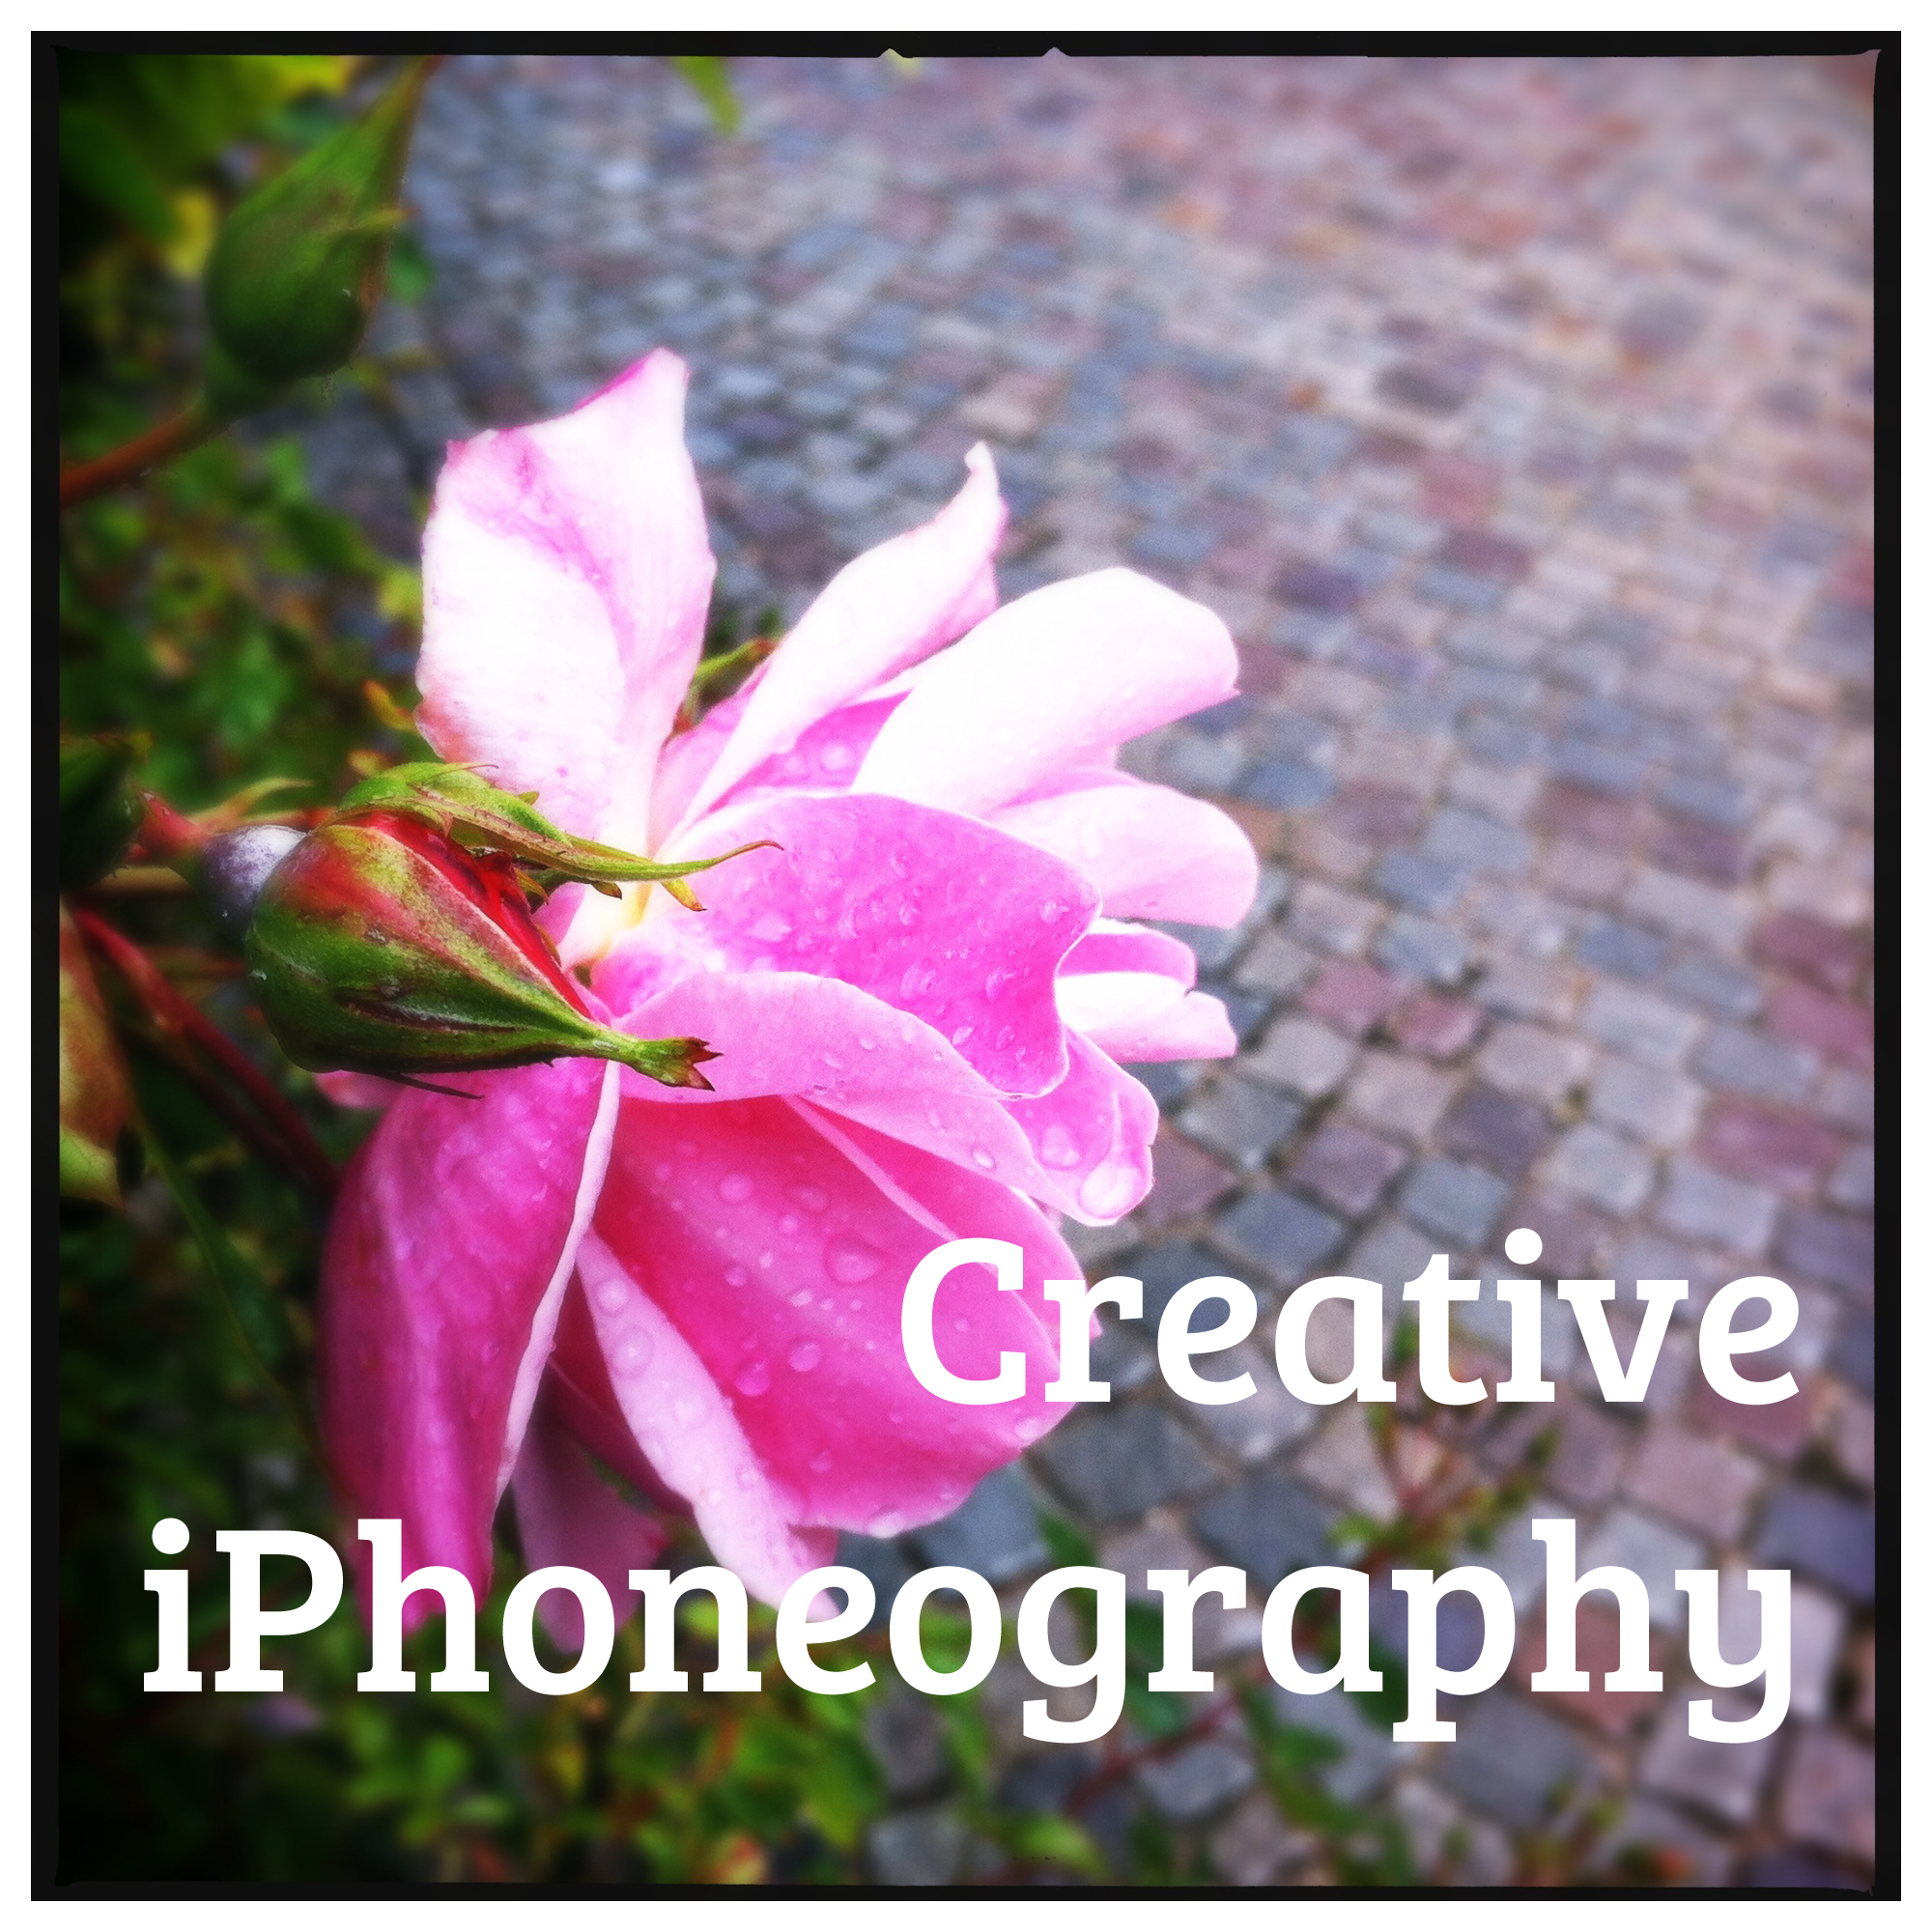 Creative iPhoneography Course